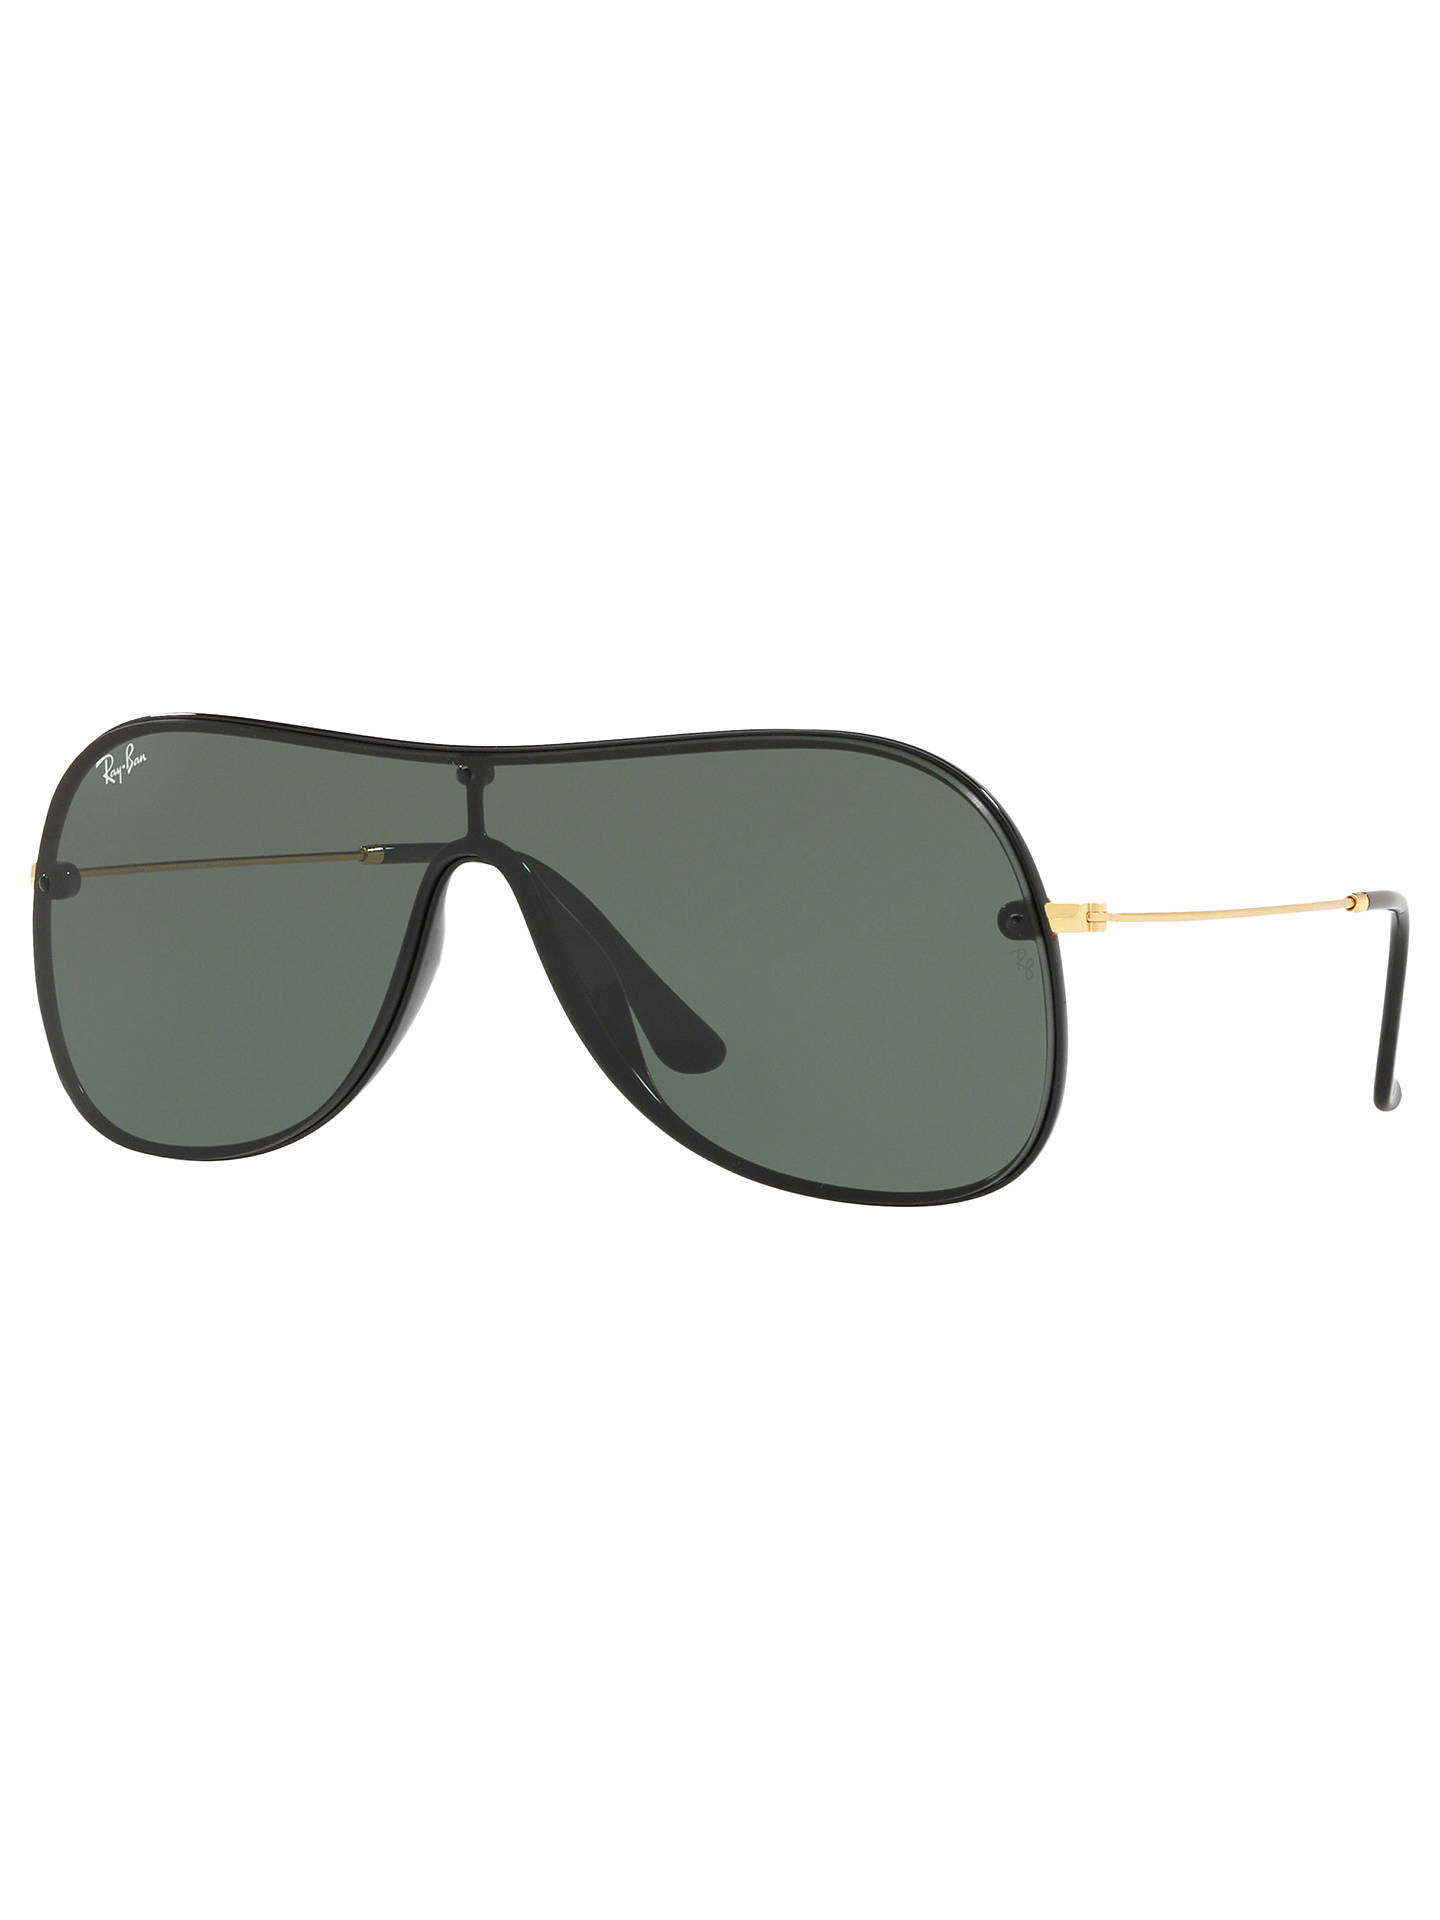 7ec7c7a9360287 BuyRay-Ban RB4311N Unisex Aviator Sunglasses, Black Green Online at  johnlewis.com ...